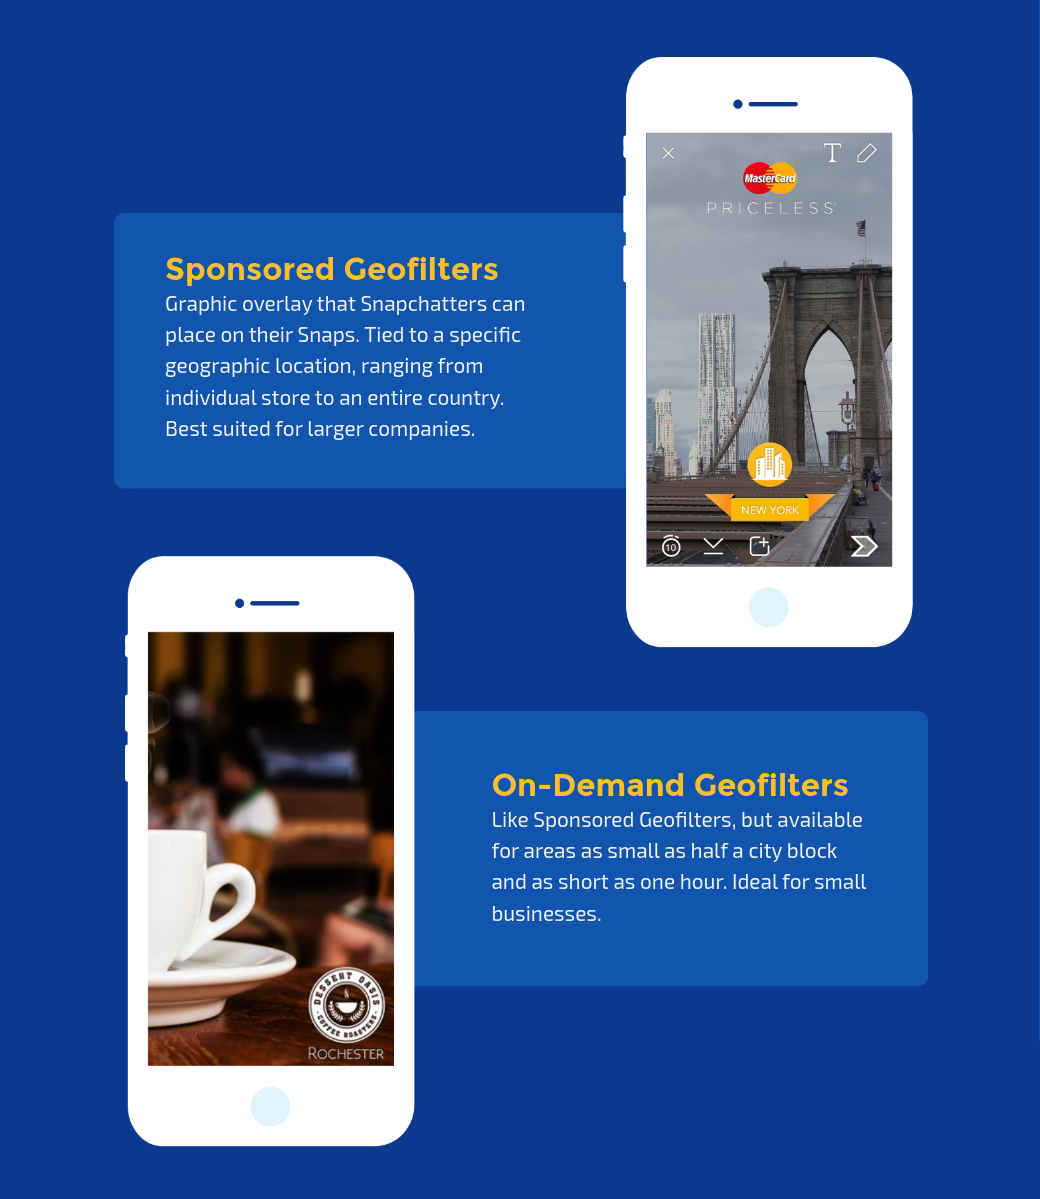 snapchat sponsored geofilters on-demand geofilters